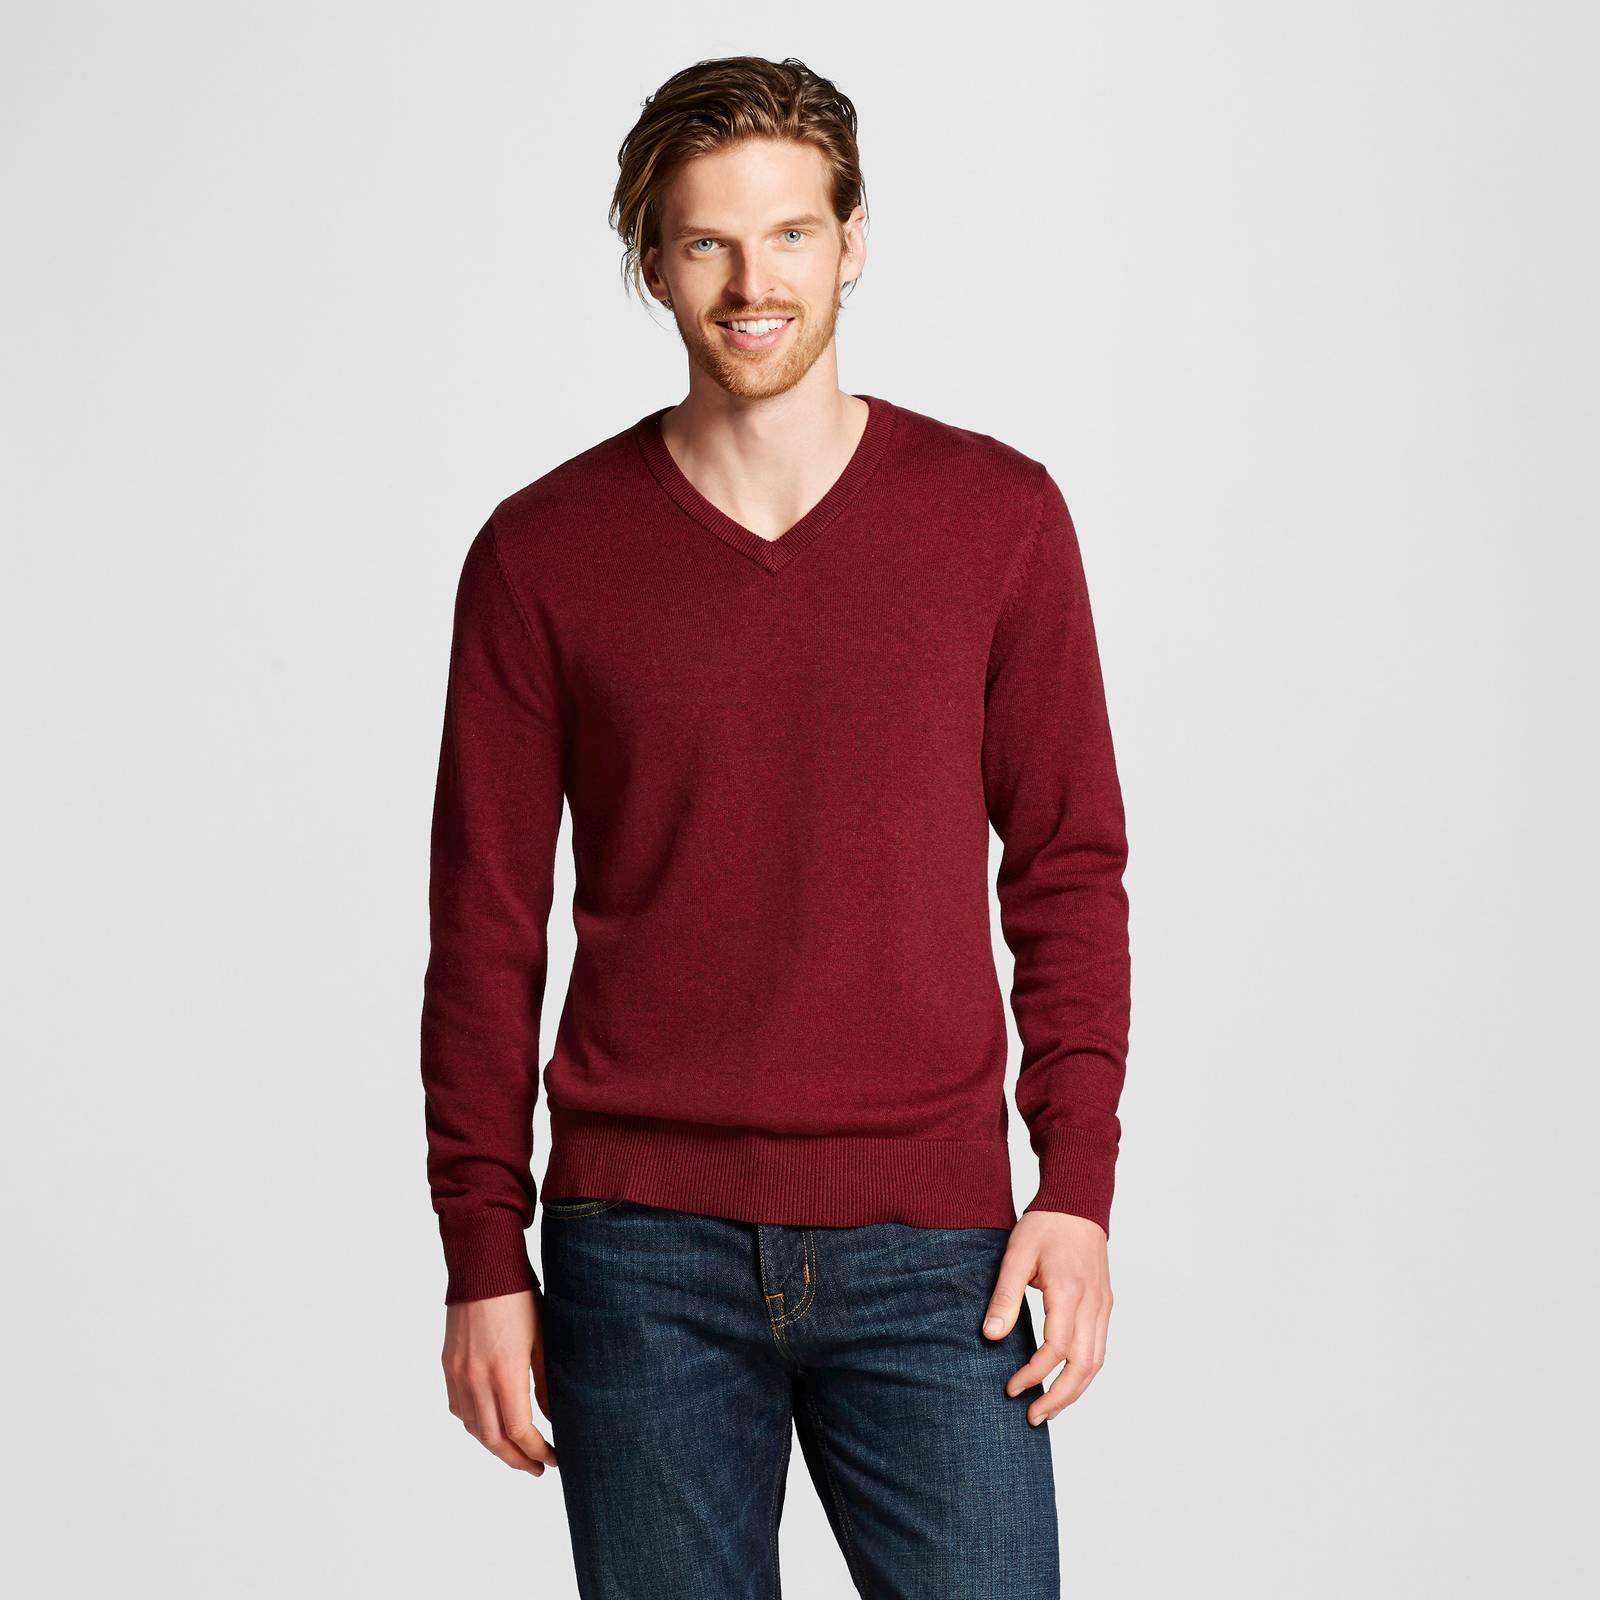 Merona Mens Sweater Red Pop Long Sleeve V Neck Pullover Large L | eBay